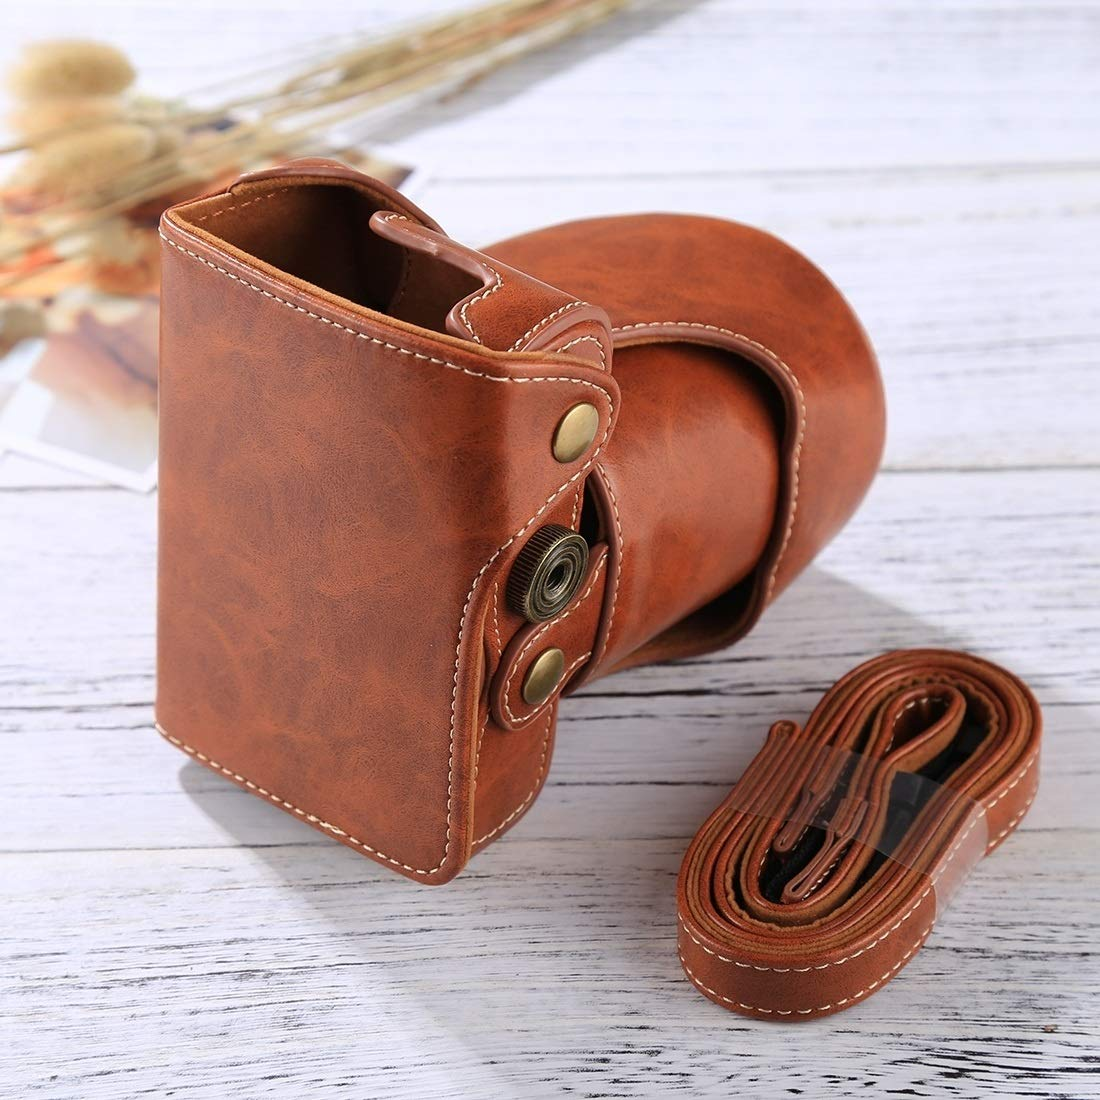 Color : Coffee Full Body Camera PU Leather Case Bag with Strap for FUJIFILM X-A3 // X-A2// X-M1 // X-A10 16-50mm // 18-55mm // XF 35mm Lens Durable